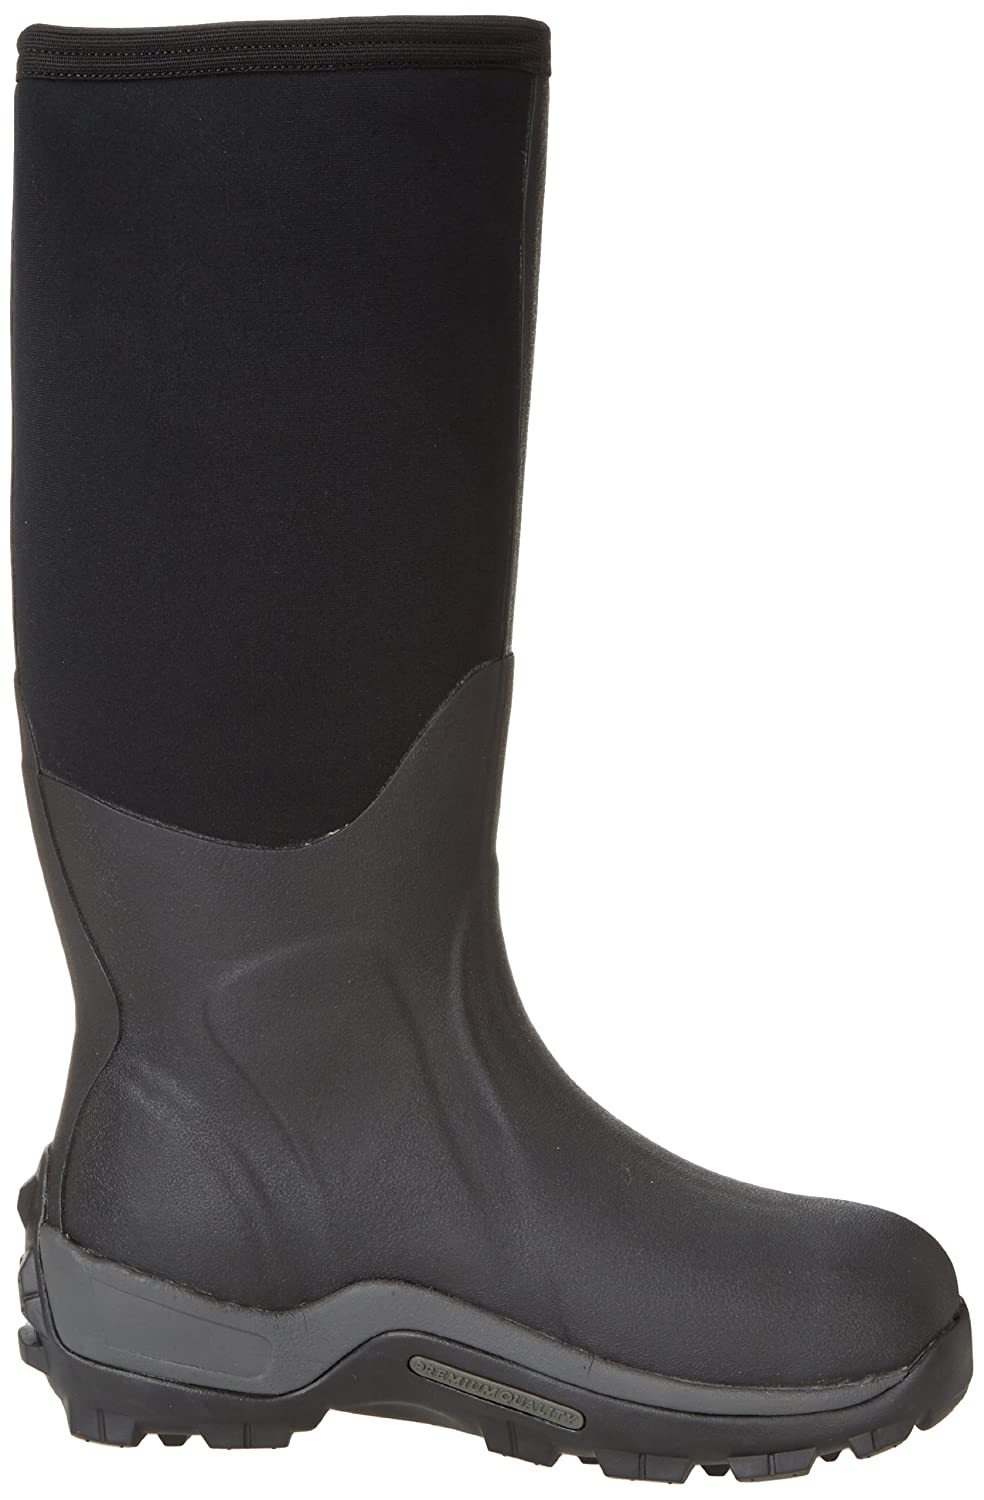 The Original MuckBoots Adult Arctic Sport Boot B000WG21K4 Men's 5 M/Women's 6 M|Black